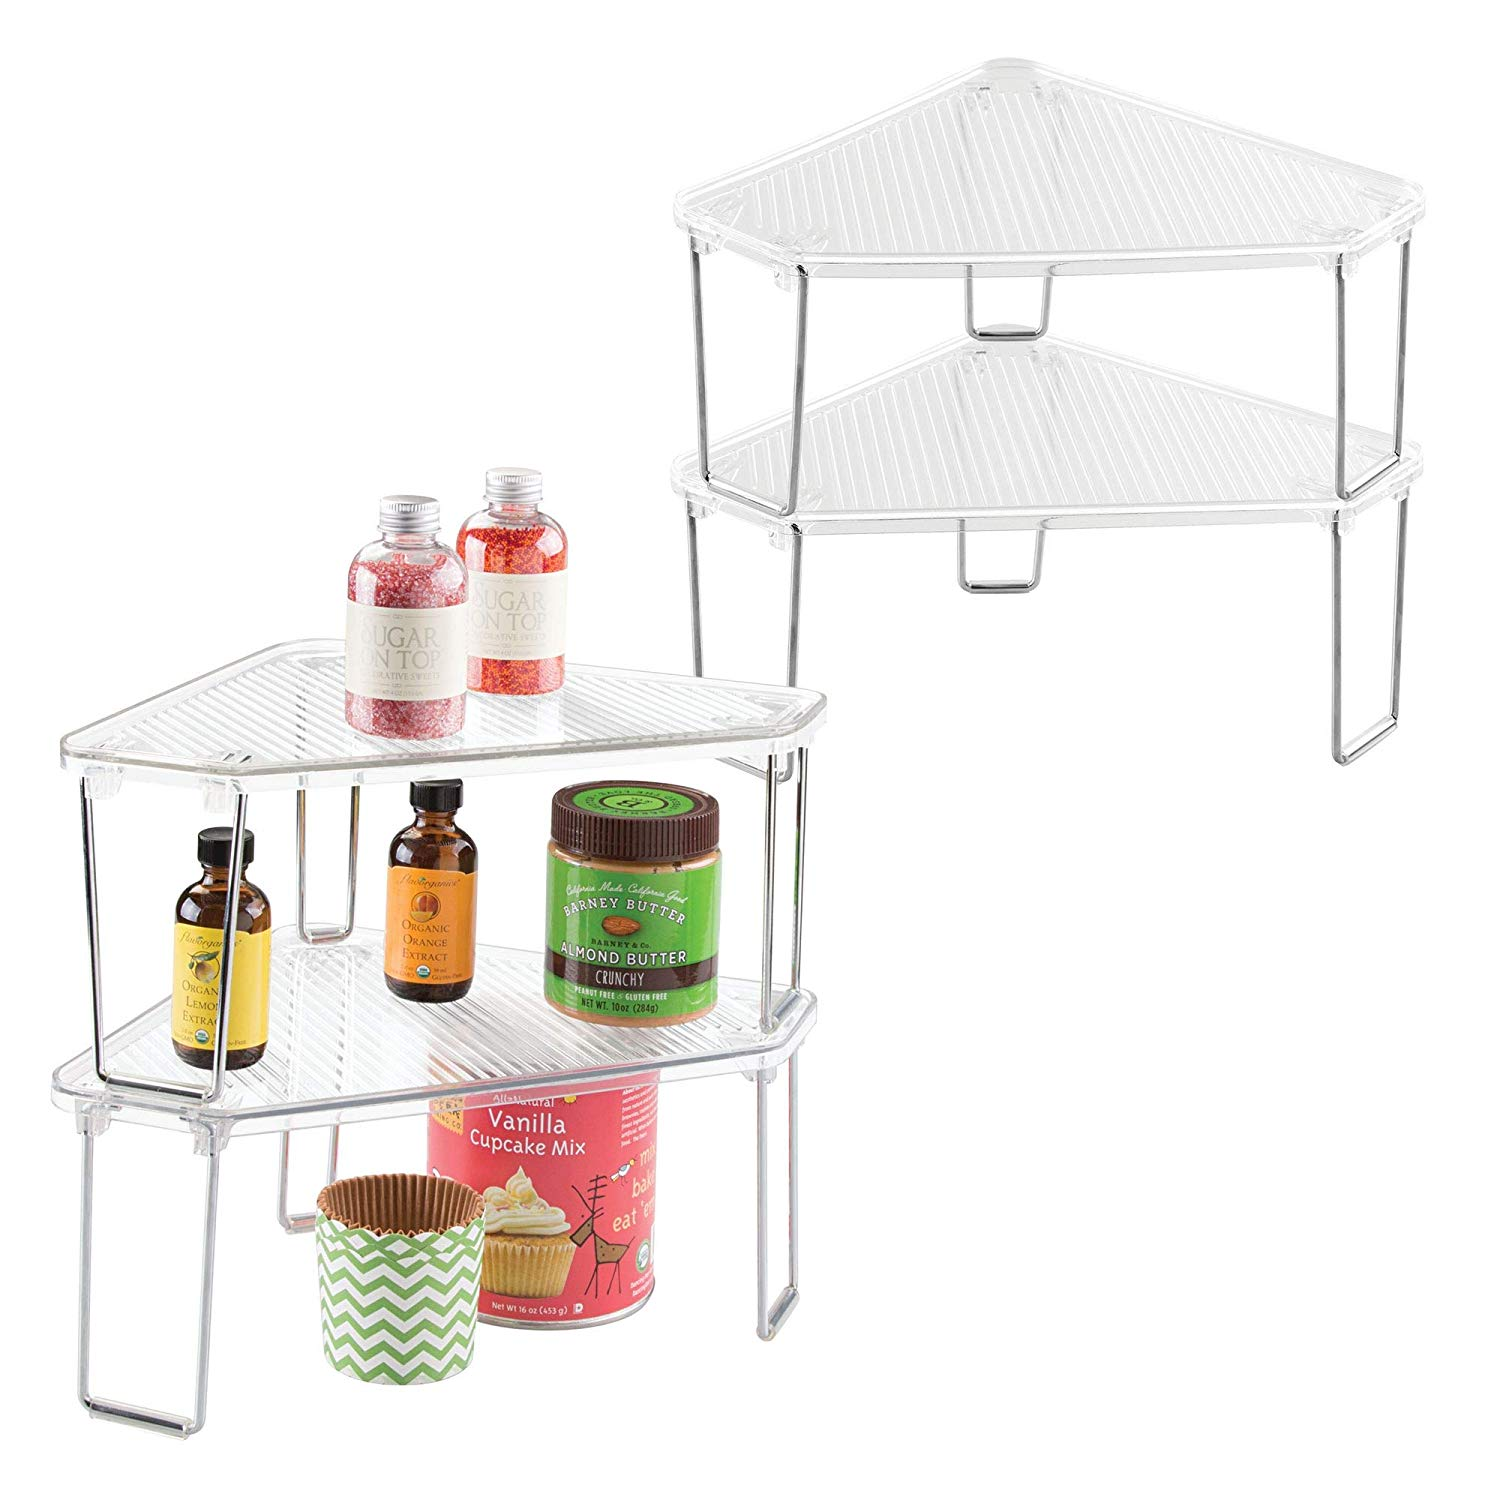 mDesign Corner Plastic/Metal Freestanding Stackable Organizer Shelf